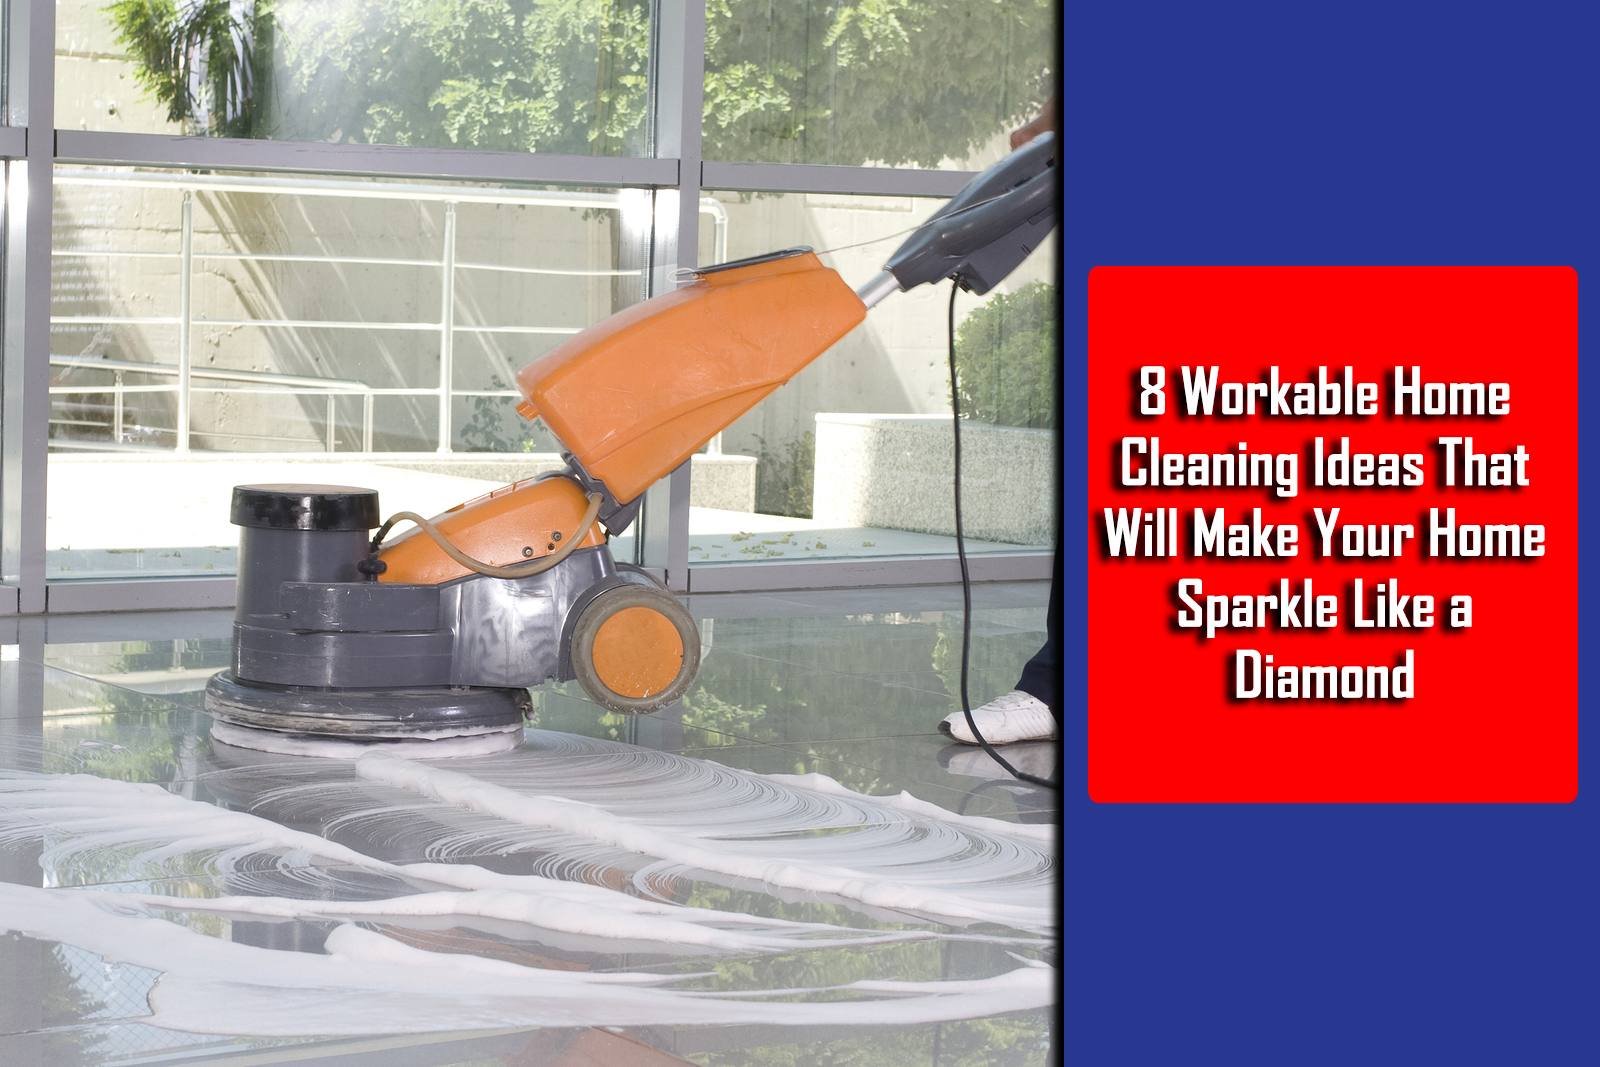 8 Workable Home Cleaning Ideas That Will Make Your Home Sparkle Like A Diamond